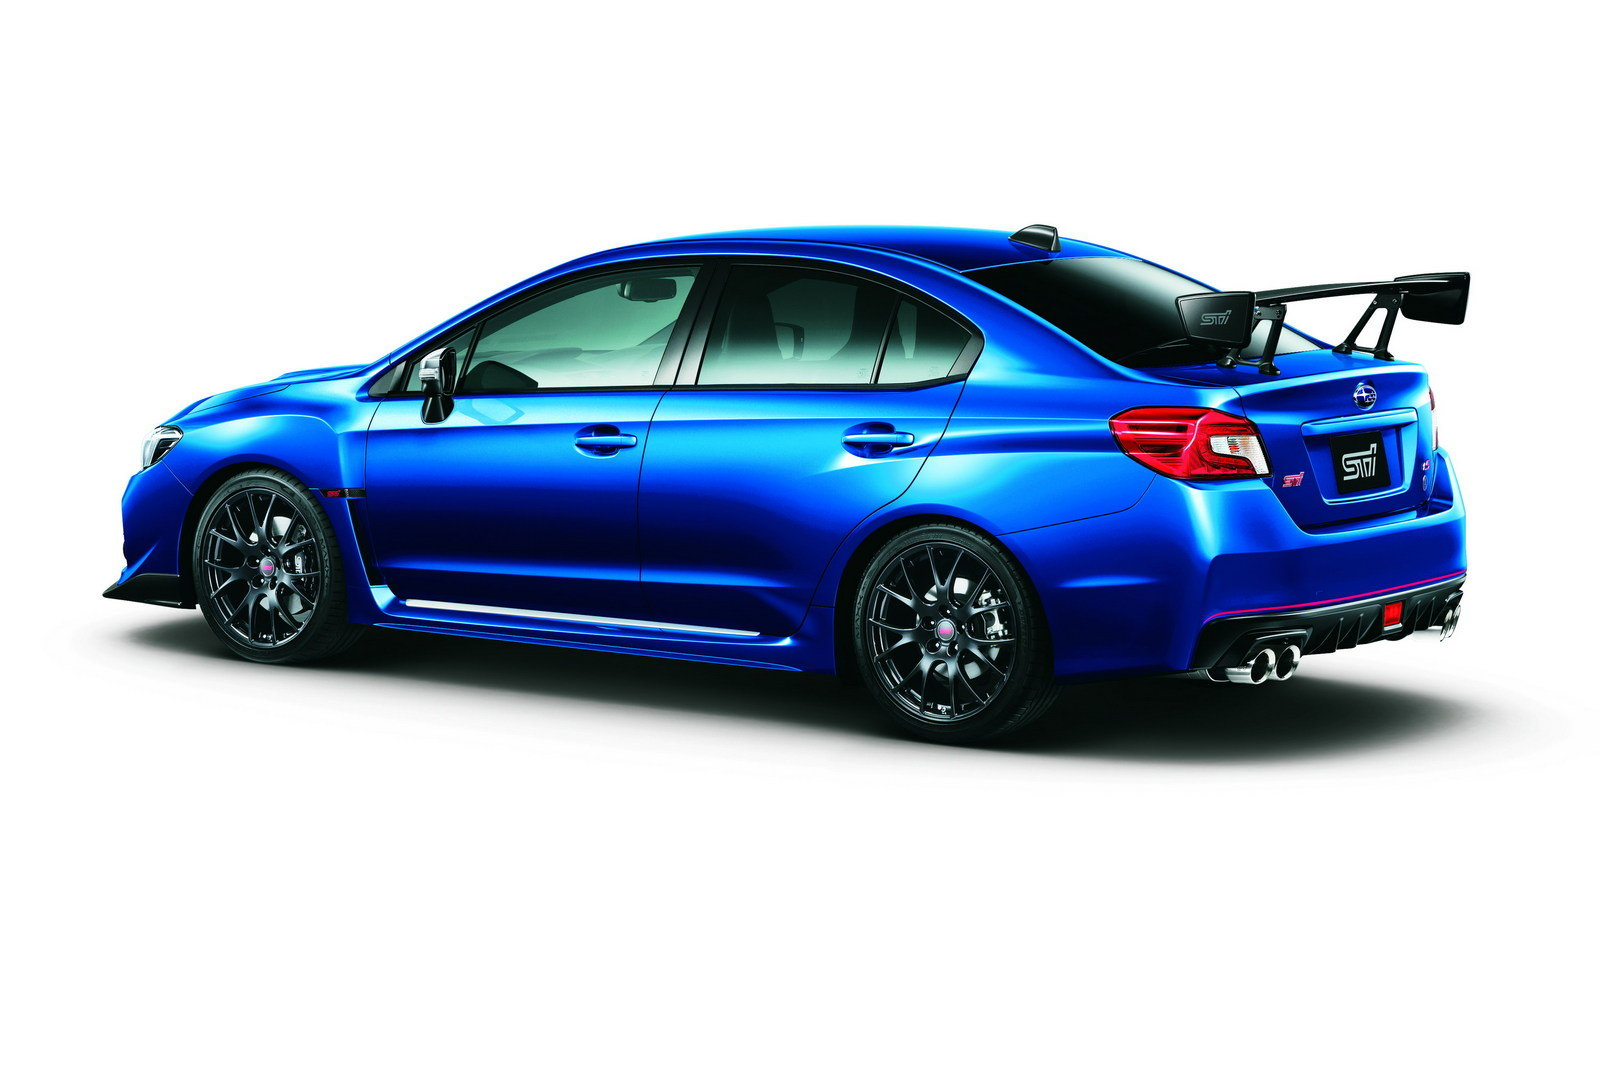 2017 Subaru STI WRX S4 TS - Picture 690985 | car review @ Top Speed